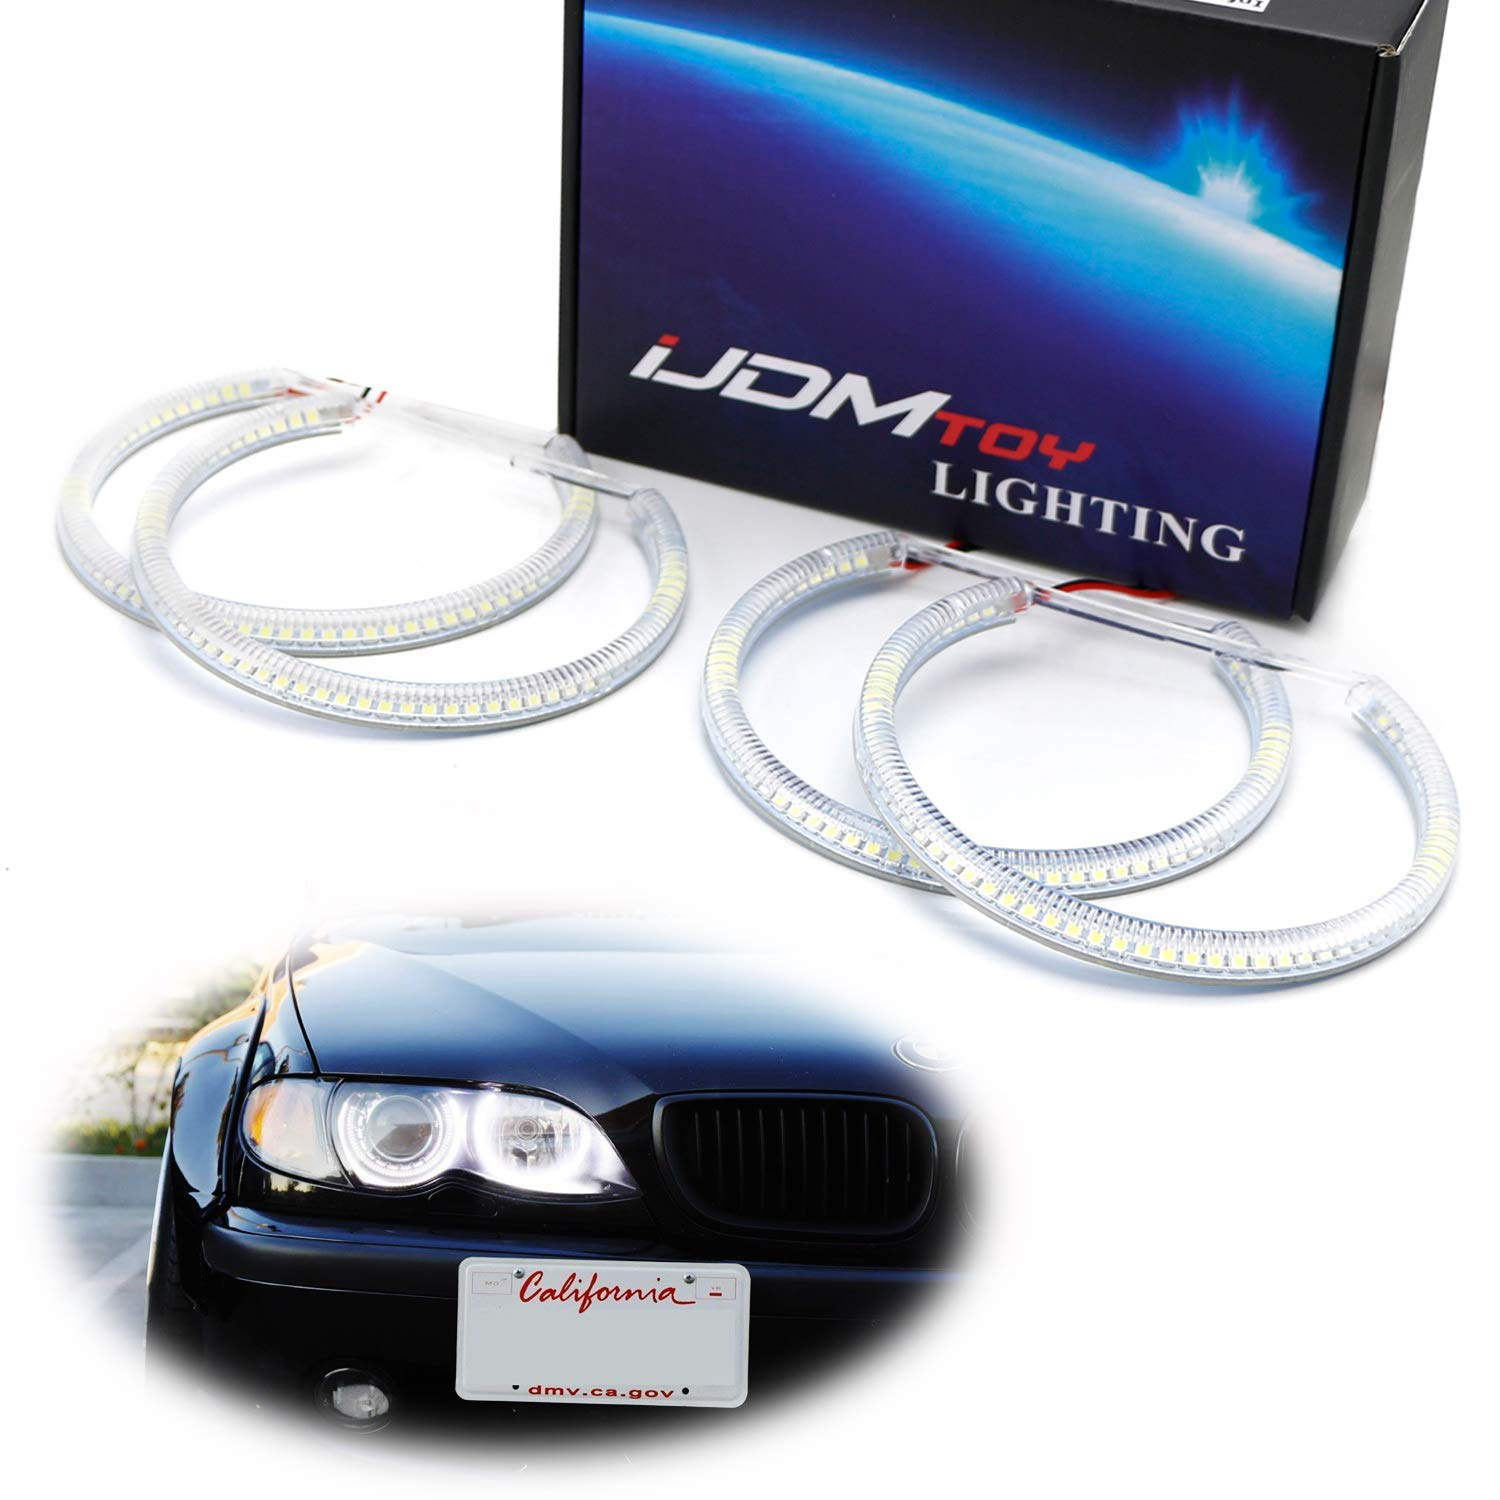 iJDMTOY 7000K Xenon White 264-SMD LED Angel Eyes Halo Ring Lighting Kit Compatible With BMW E36 E46 3 Series E39 5 Series E38 7 Series with Adaptive Xenon HID Headlight